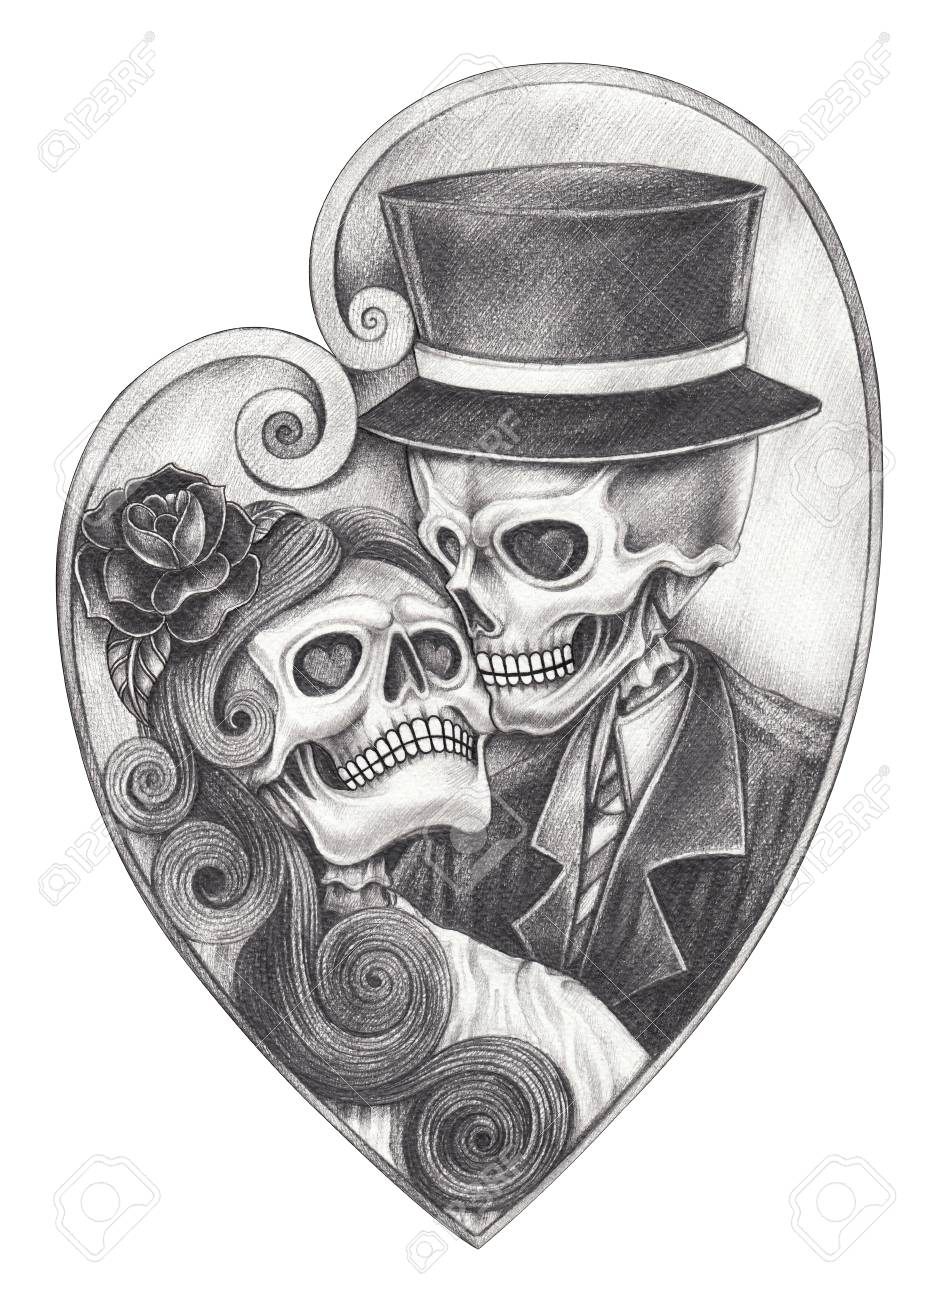 Art romantic skull day of the dead hand pencil drawing on paper stock photo